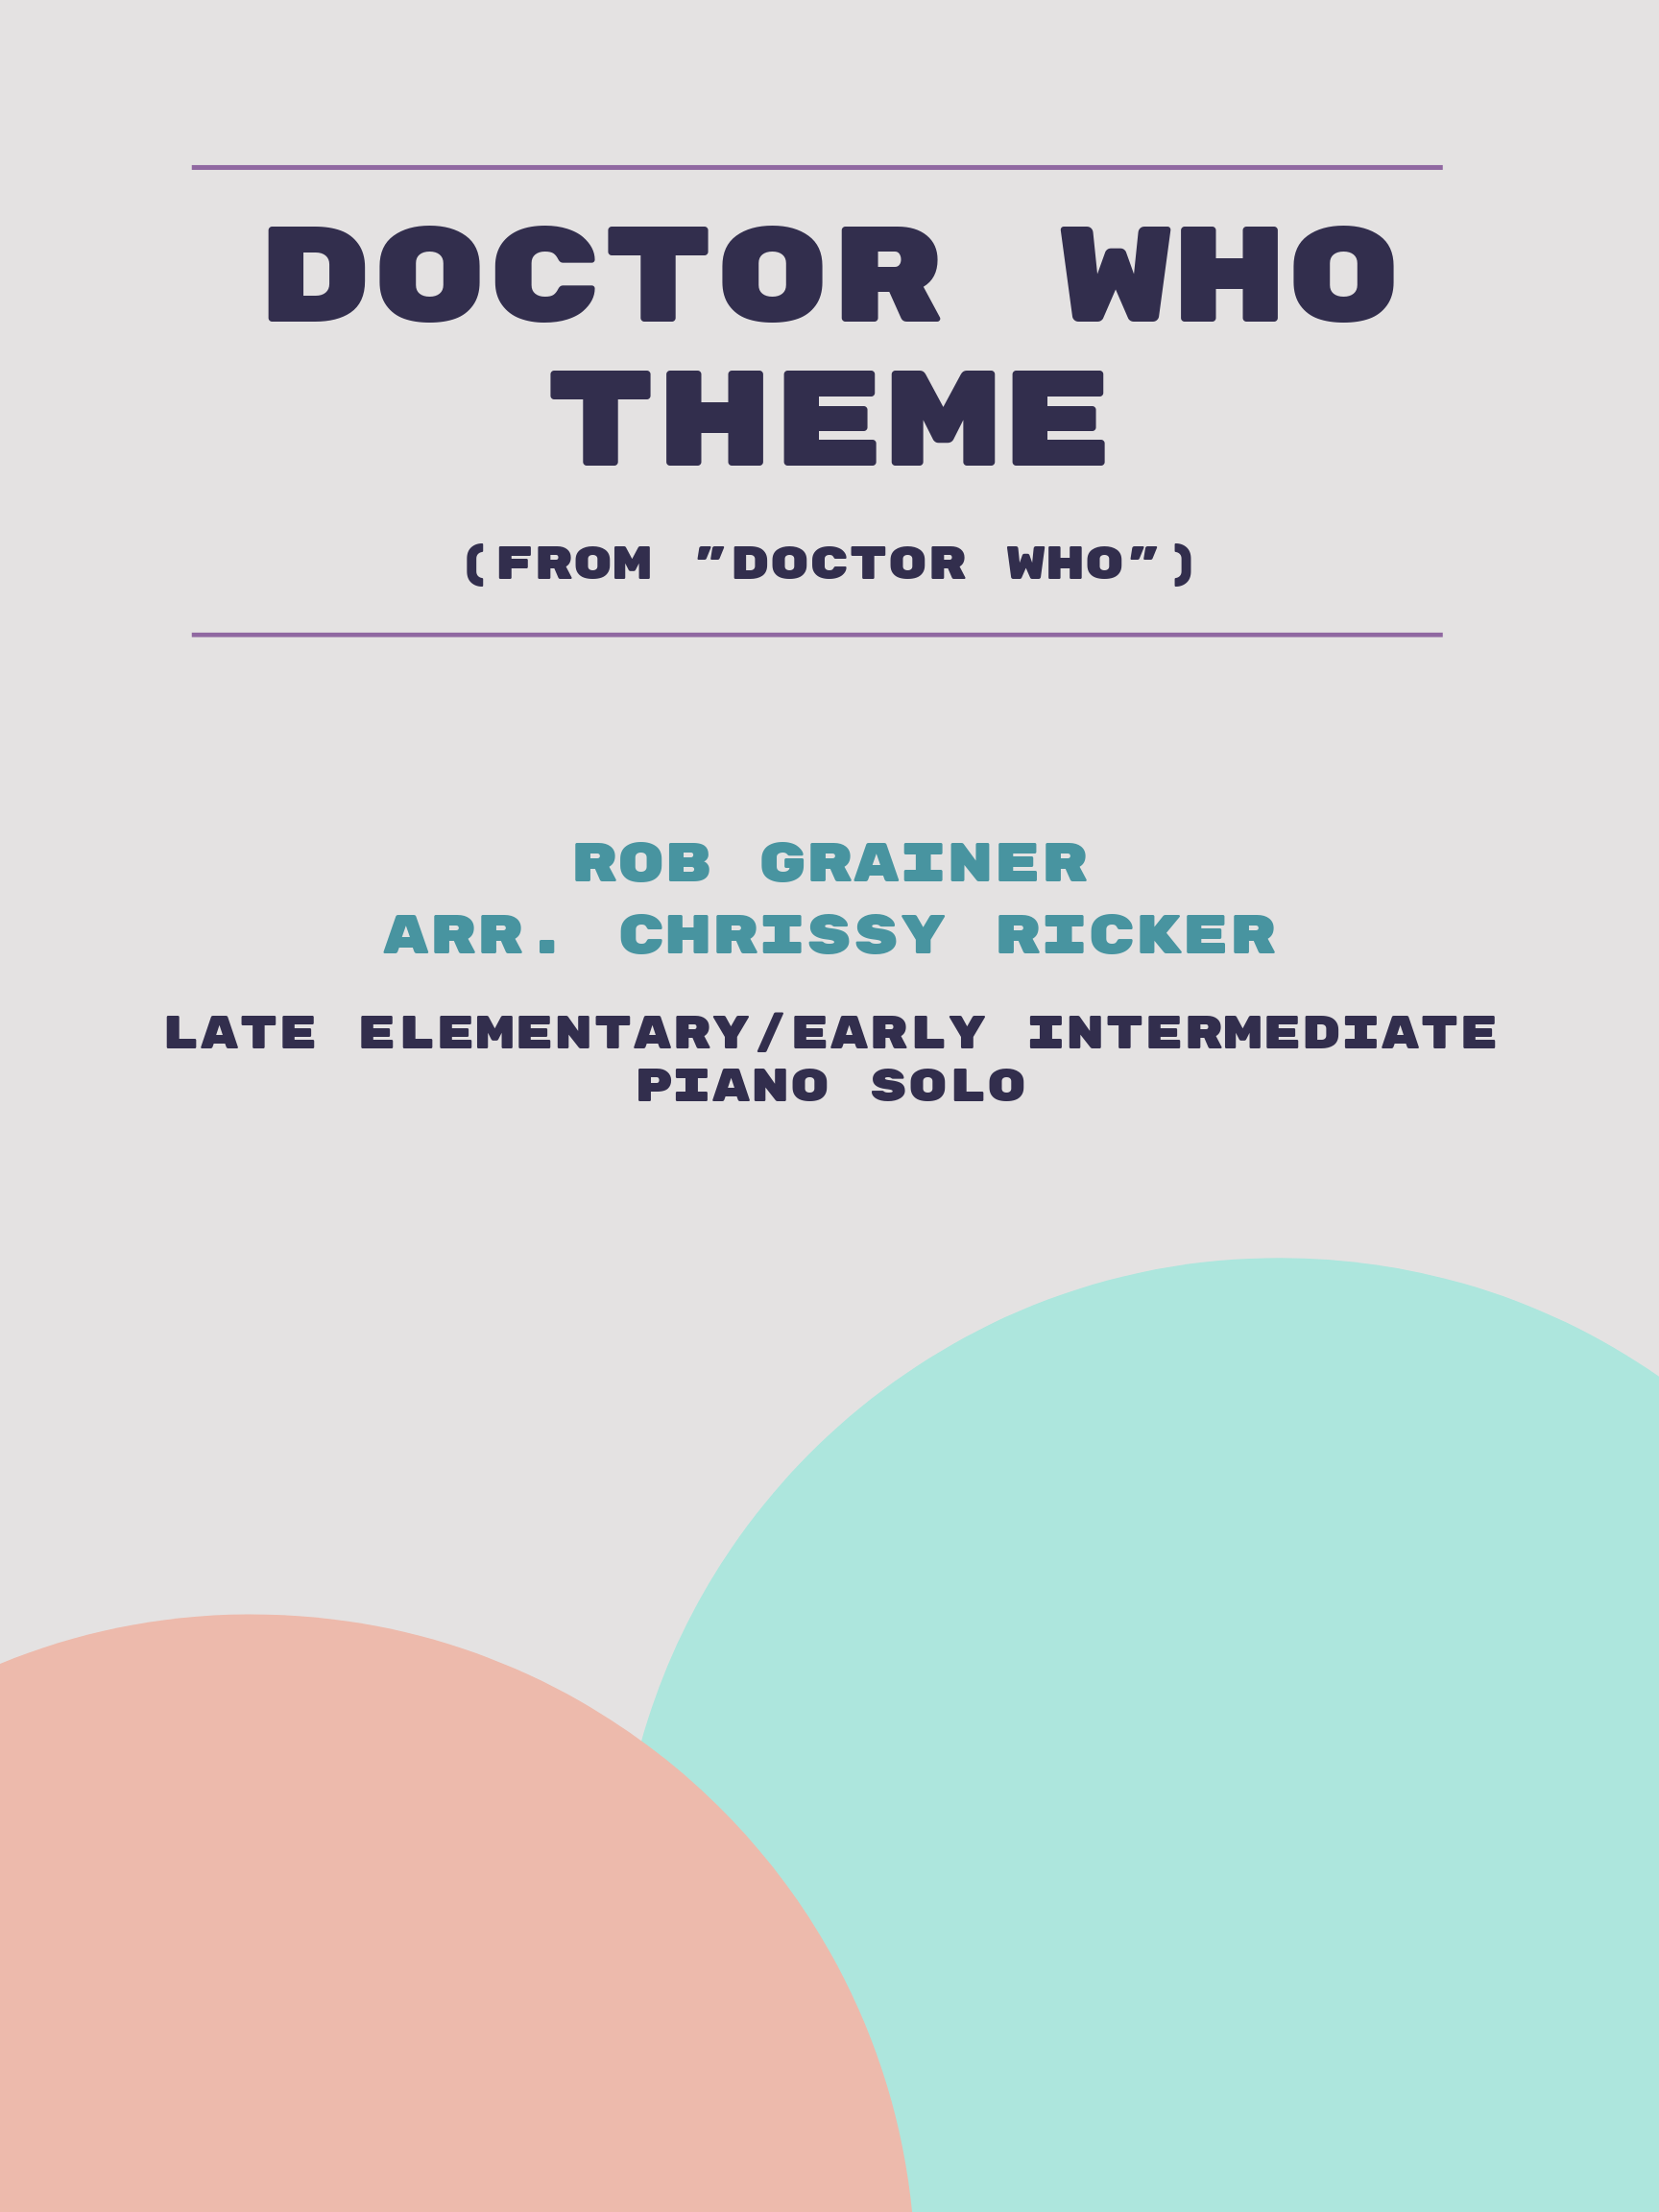 Doctor Who Theme by Rob Grainer